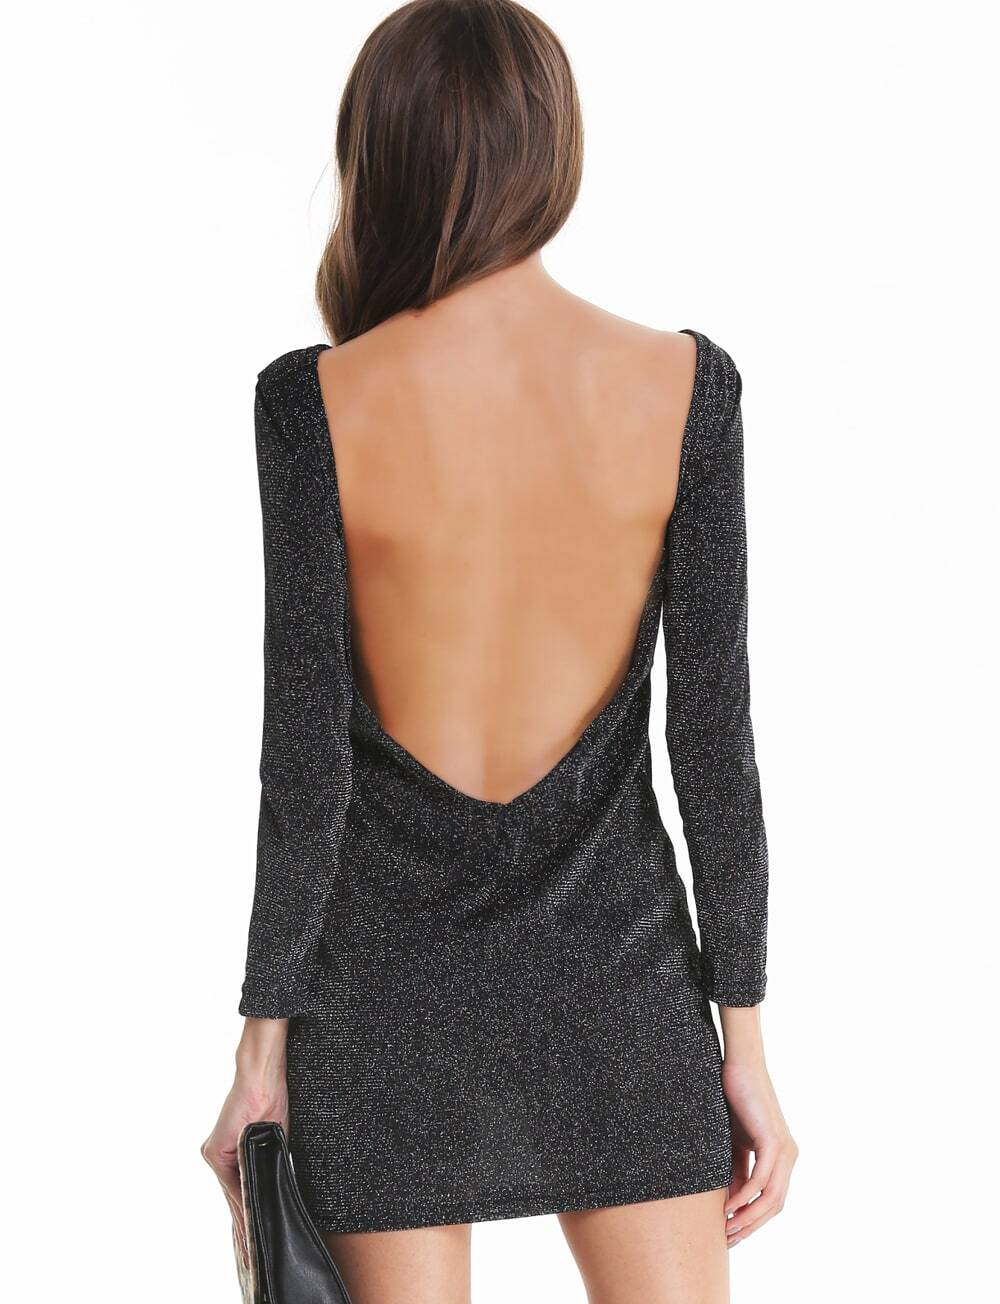 Backless Shirts For Women